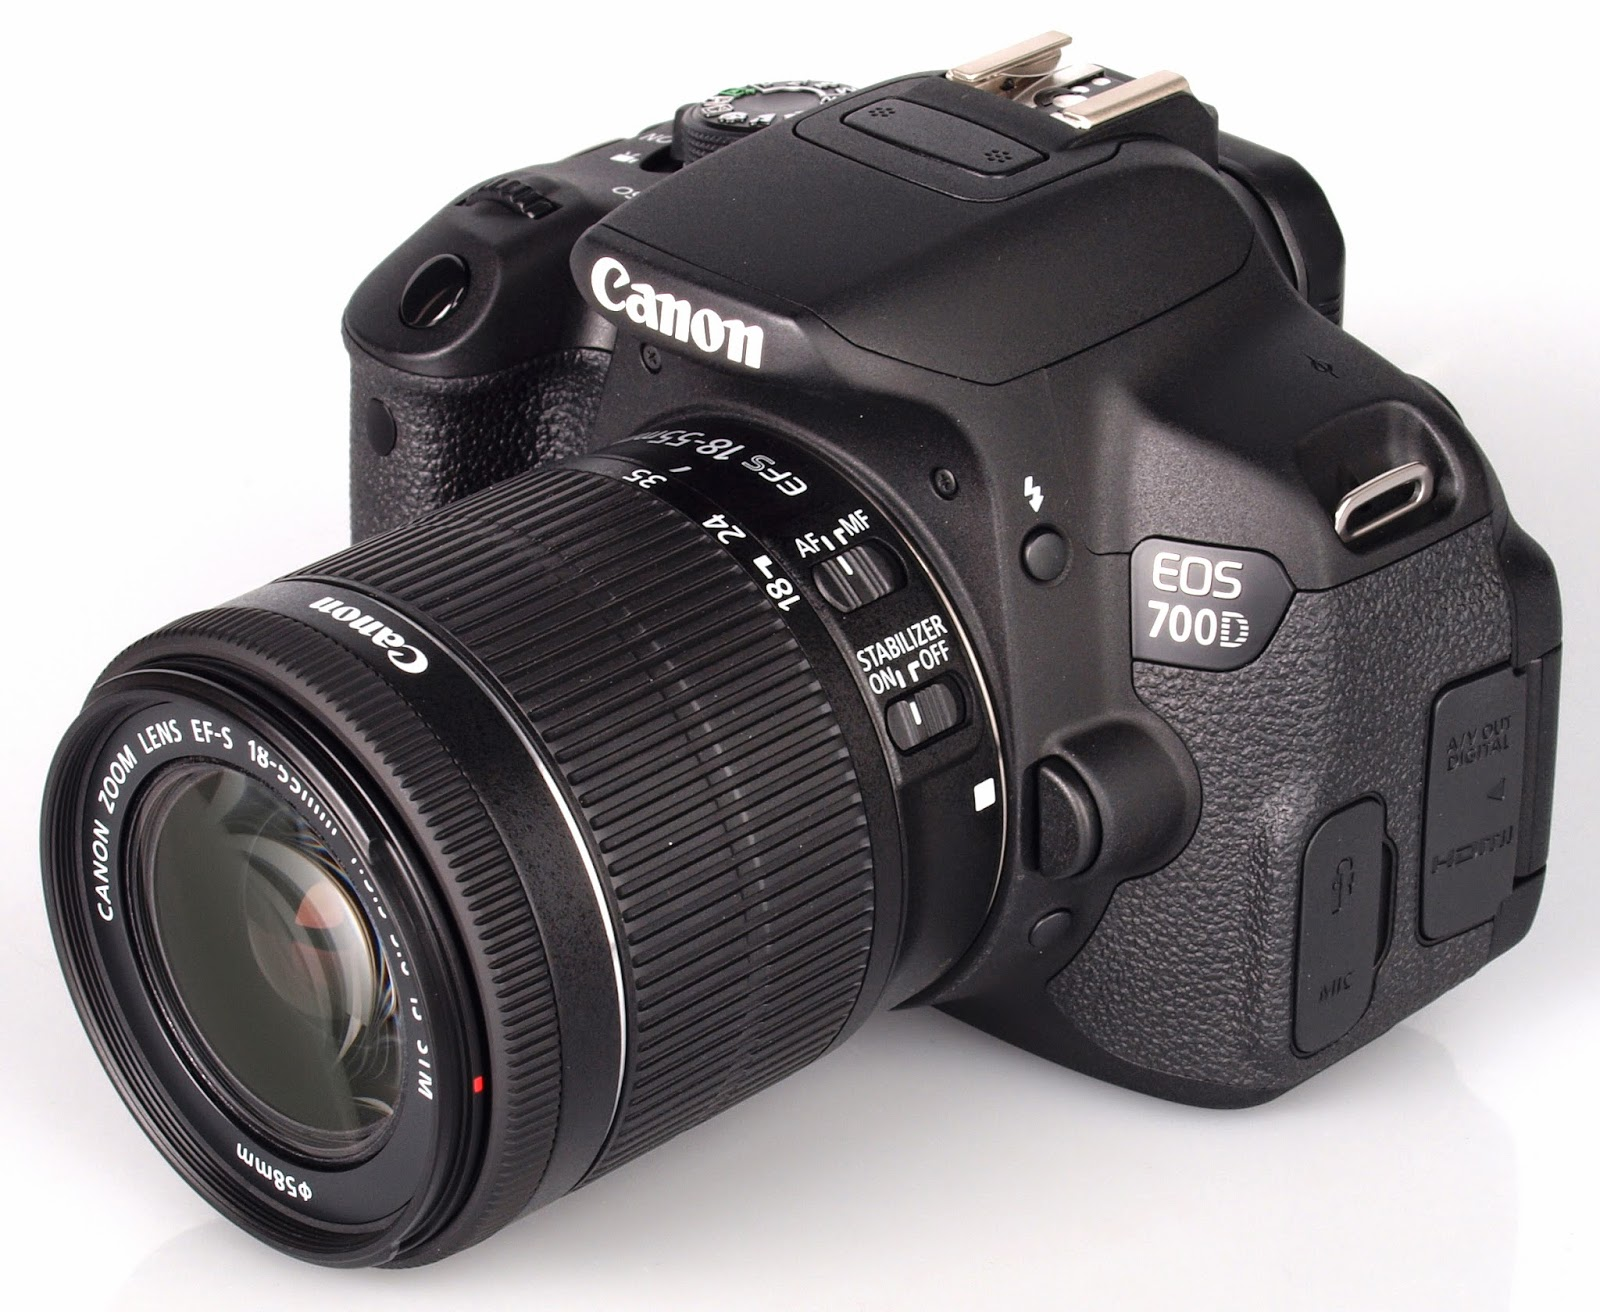 canon eos 700d with 9 cross type points and fast autofocus